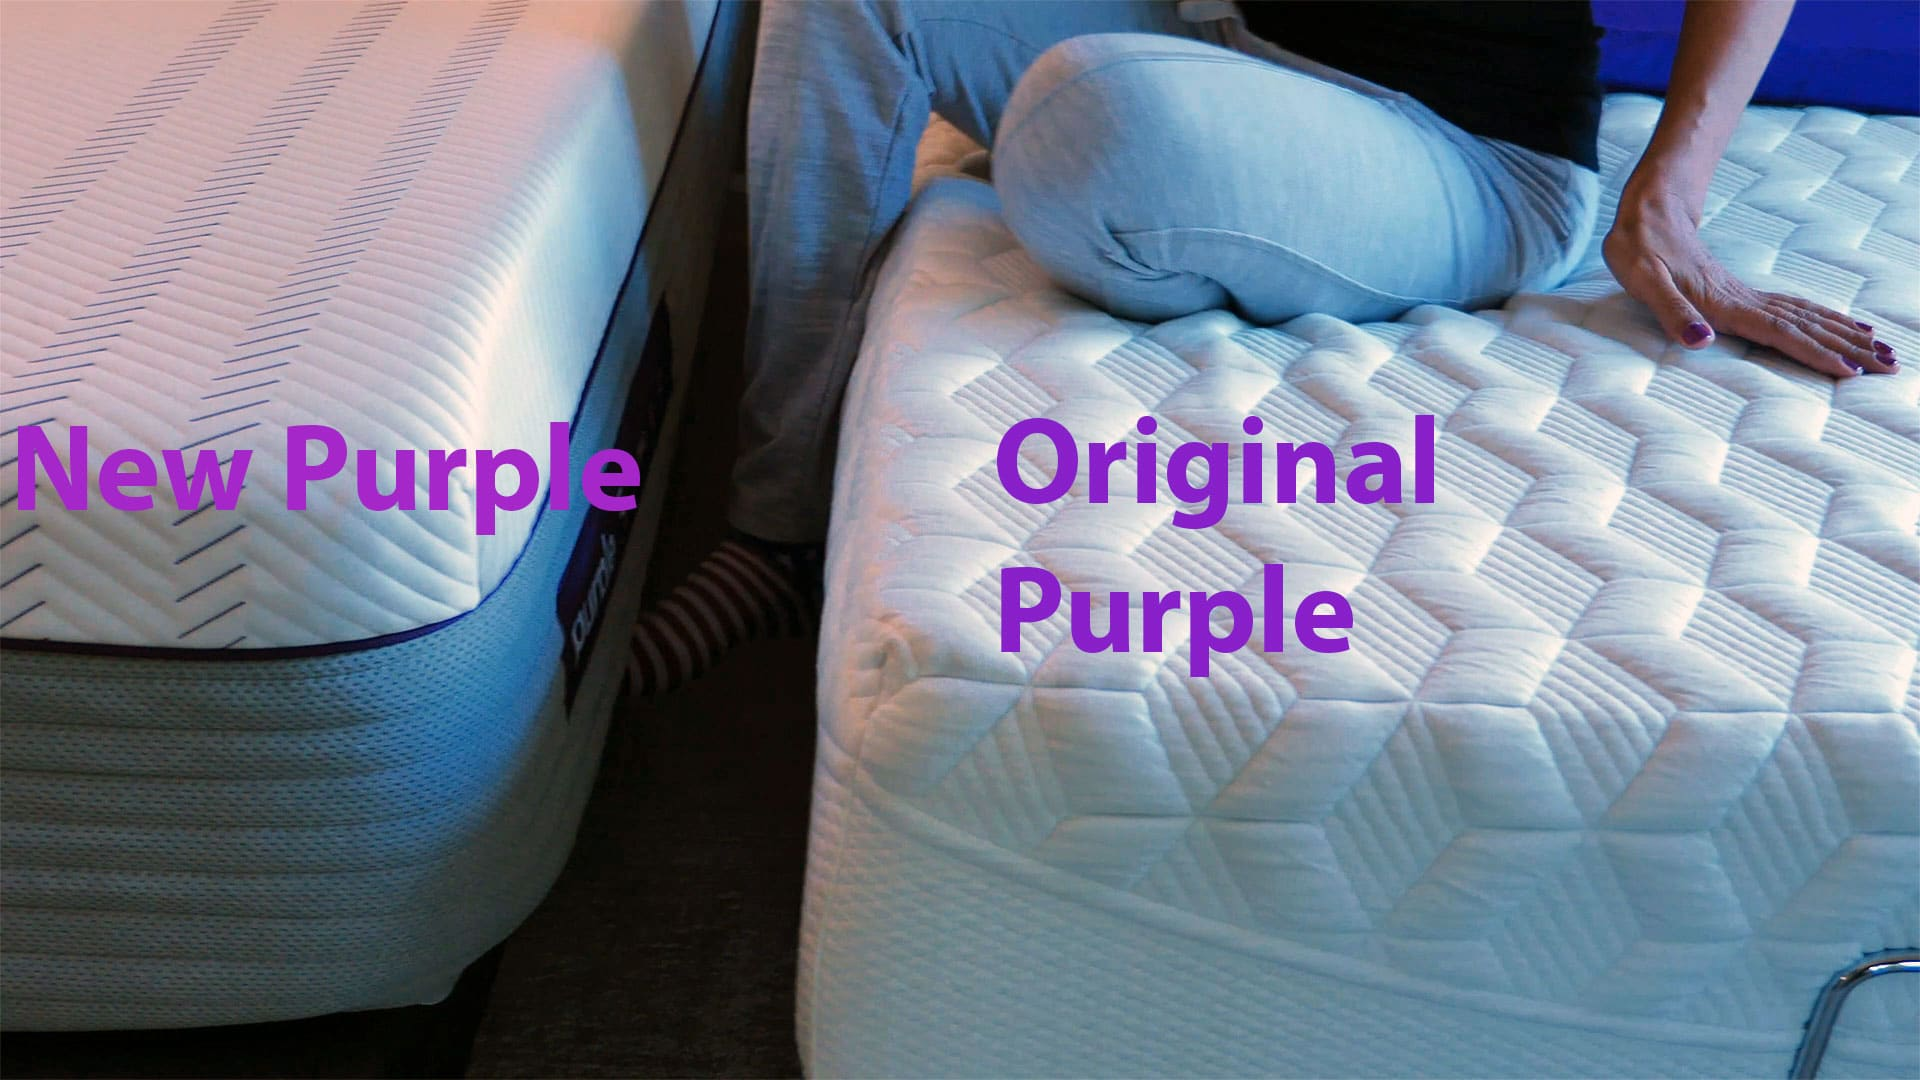 New Purple.3 Mattress and Original Purple